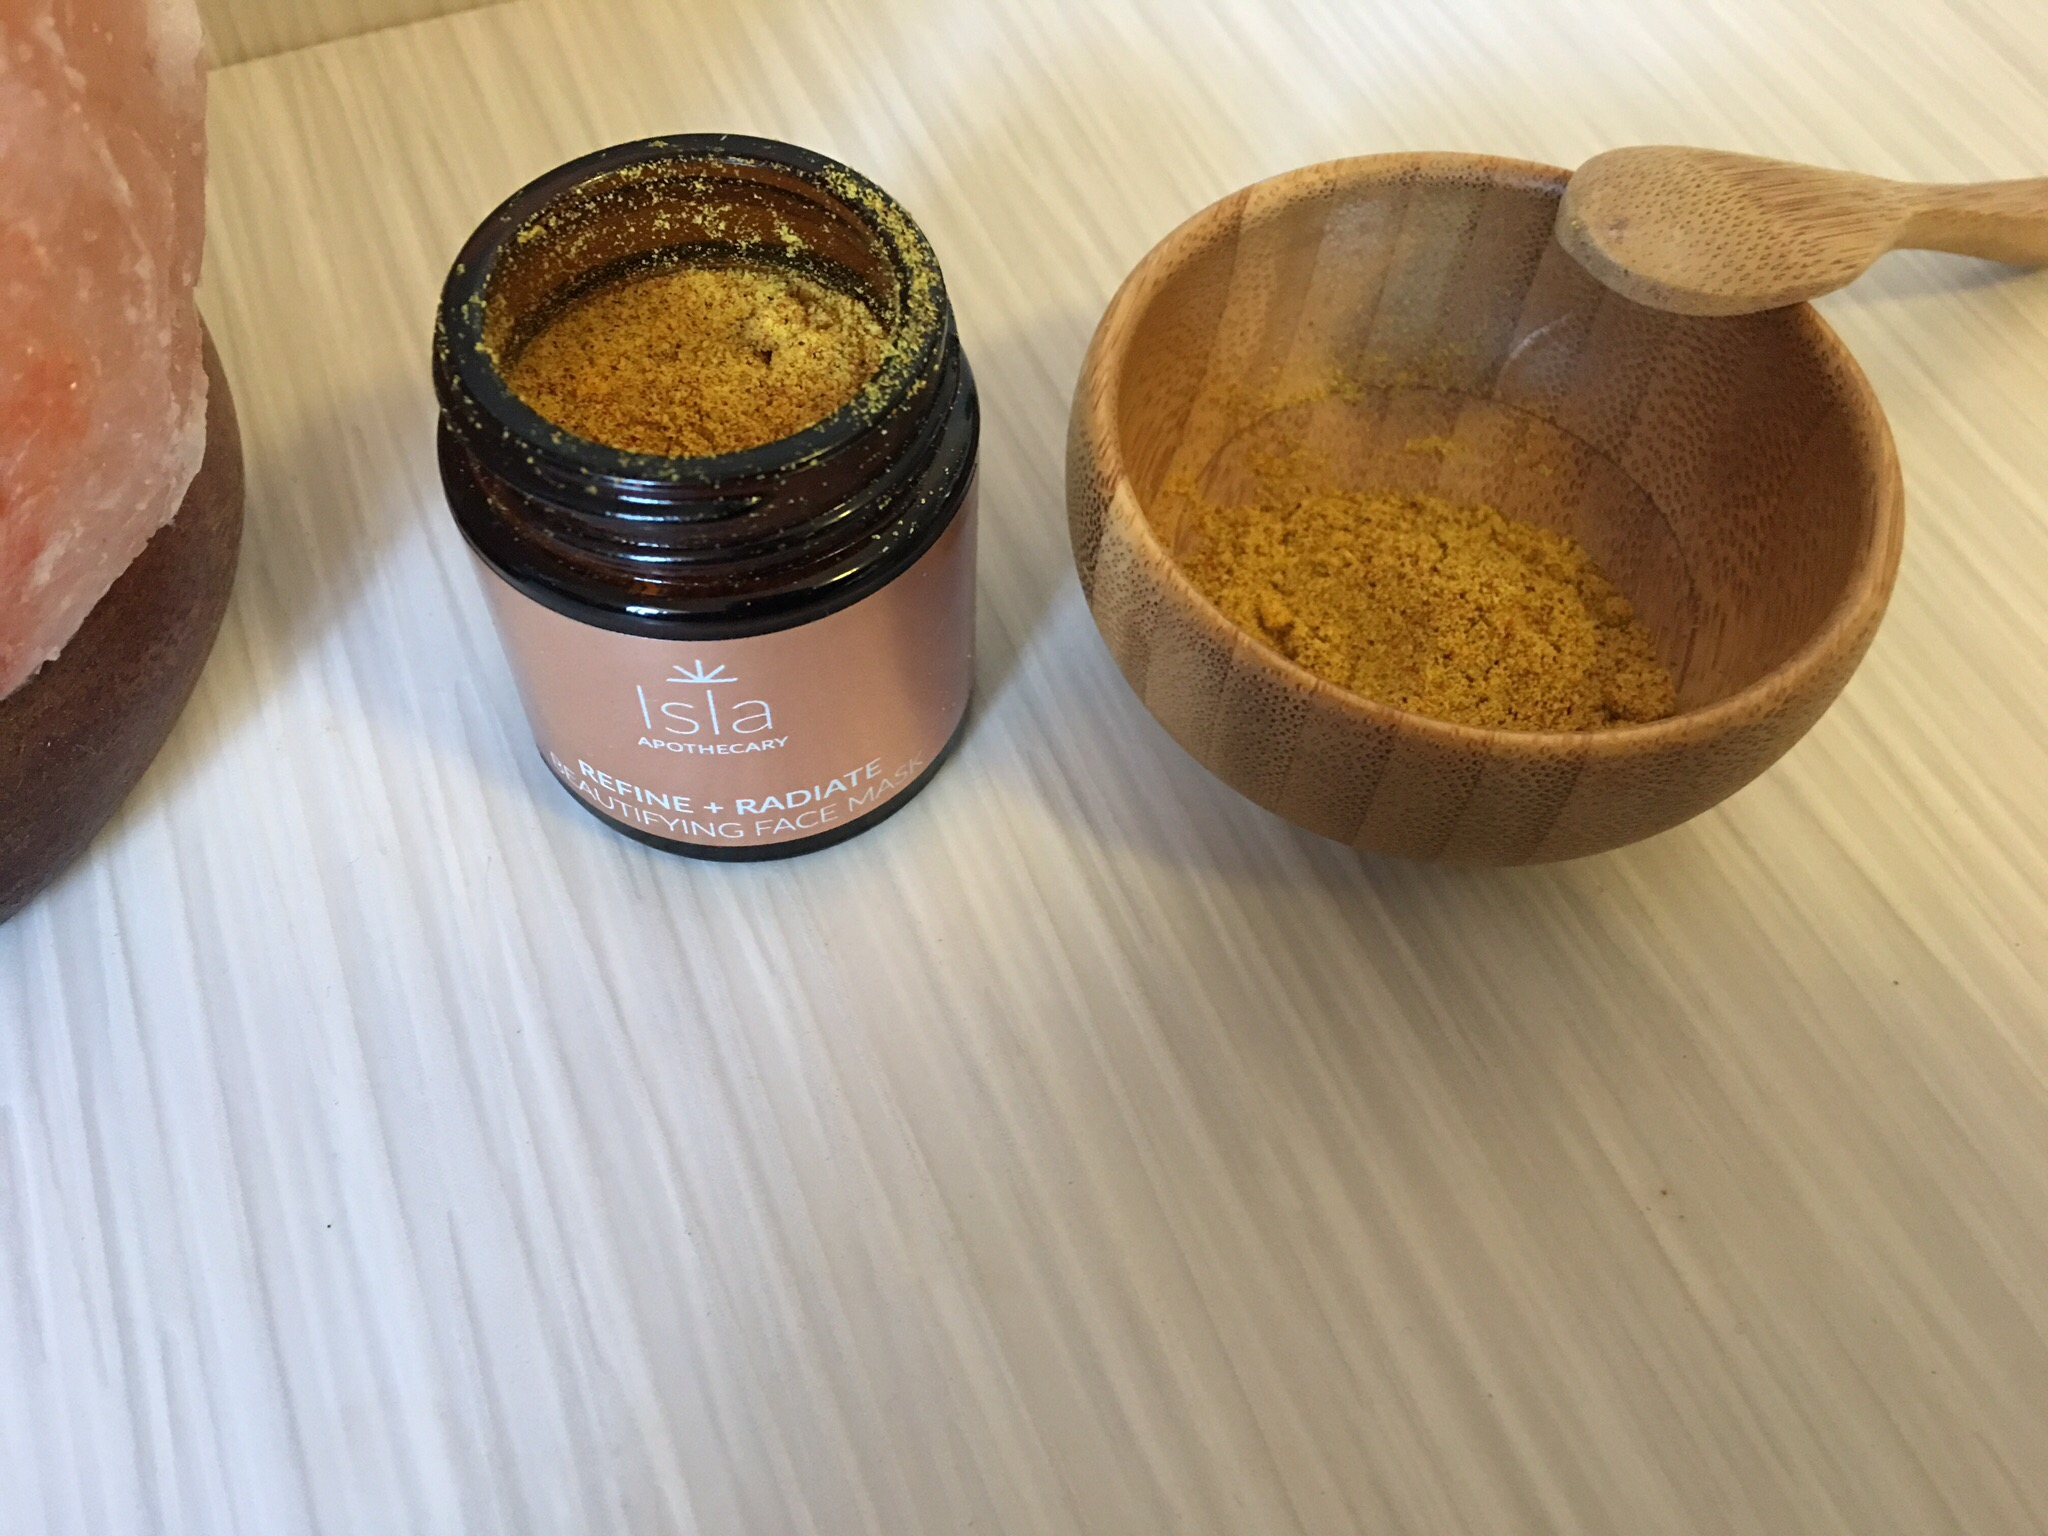 Isla apothecary refine + radiate beautifying face mask